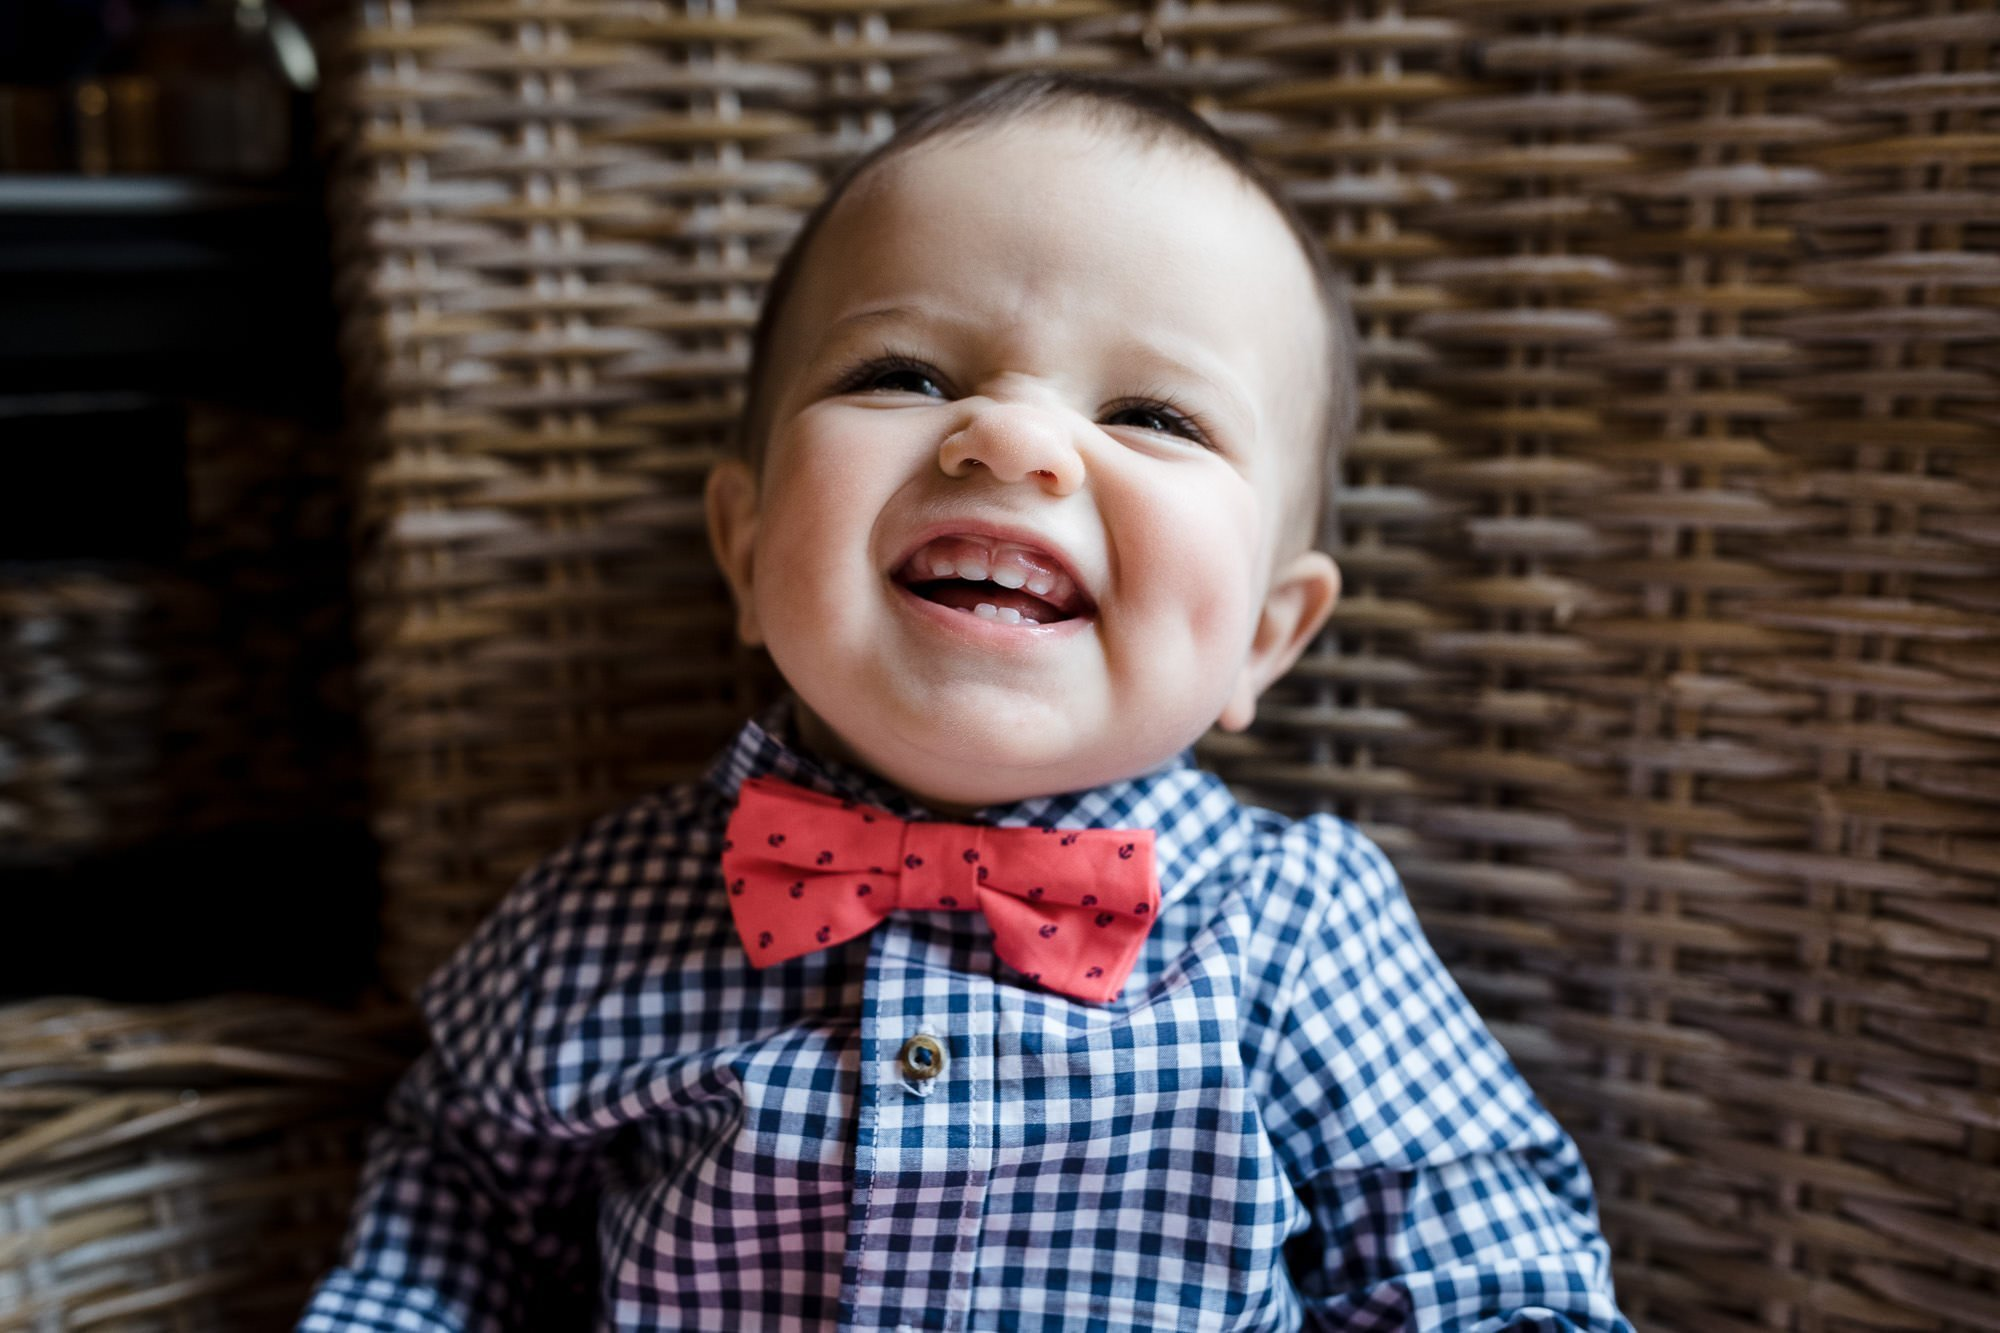 A little boy laughs hysterically in a wicker chair wearing a blue check shirt with pink bowtie during a rhode island documentary family photo session.